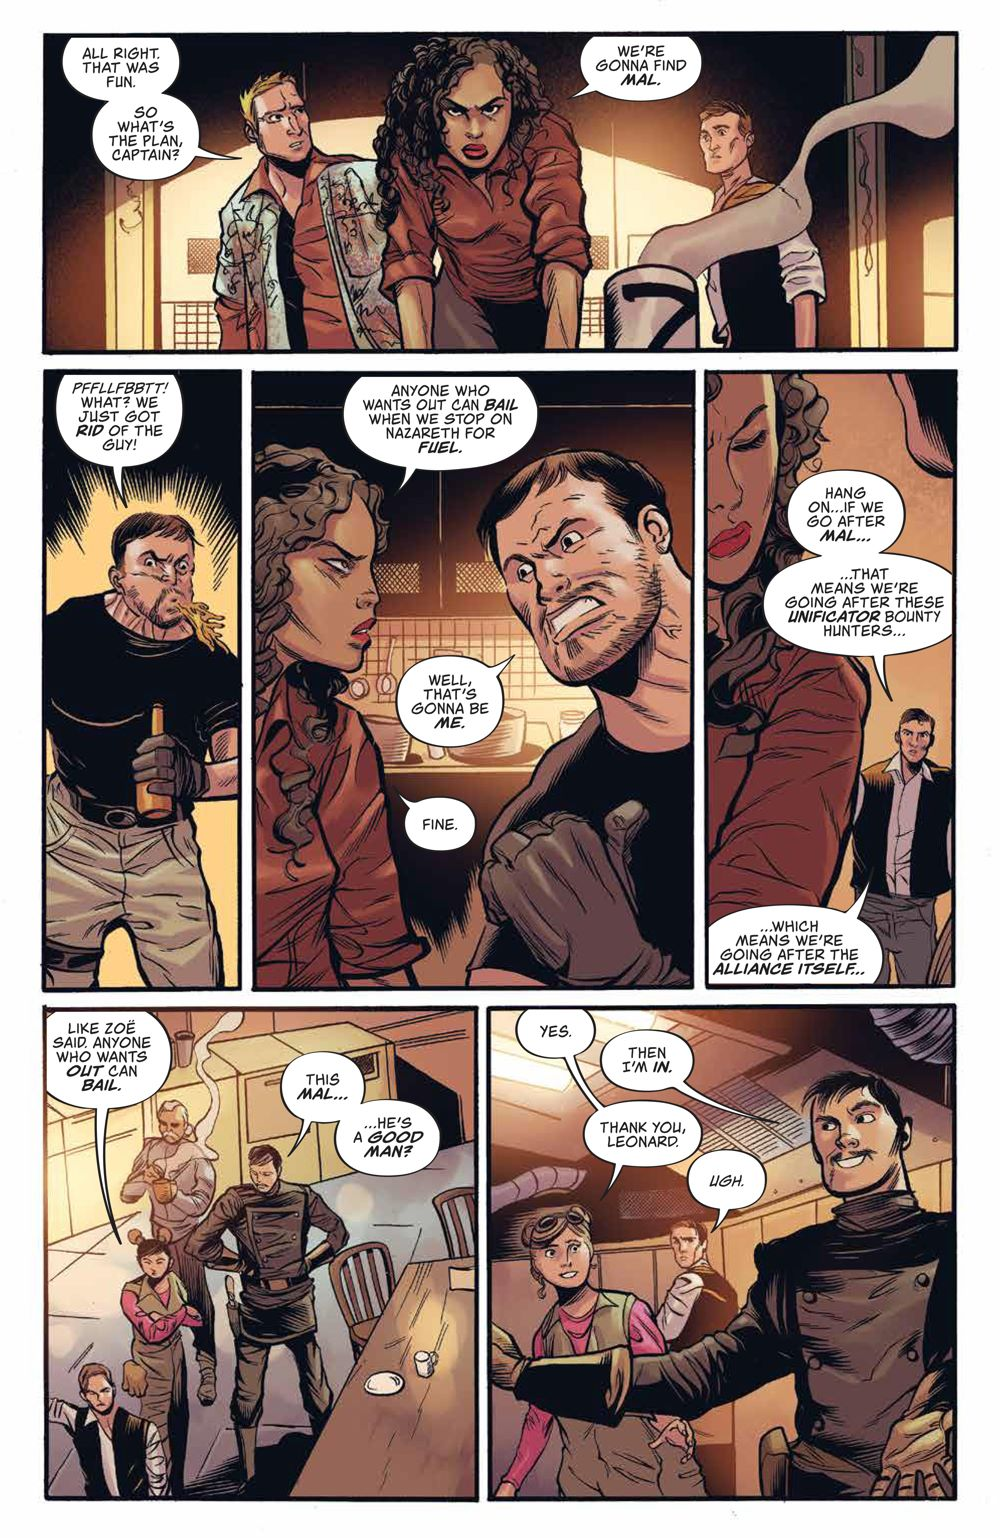 Firefly_UnificationWar_v2_SC_PRESS_17 ComicList Previews: FIREFLY THE UNIFICATION WAR VOLUME 2 TP